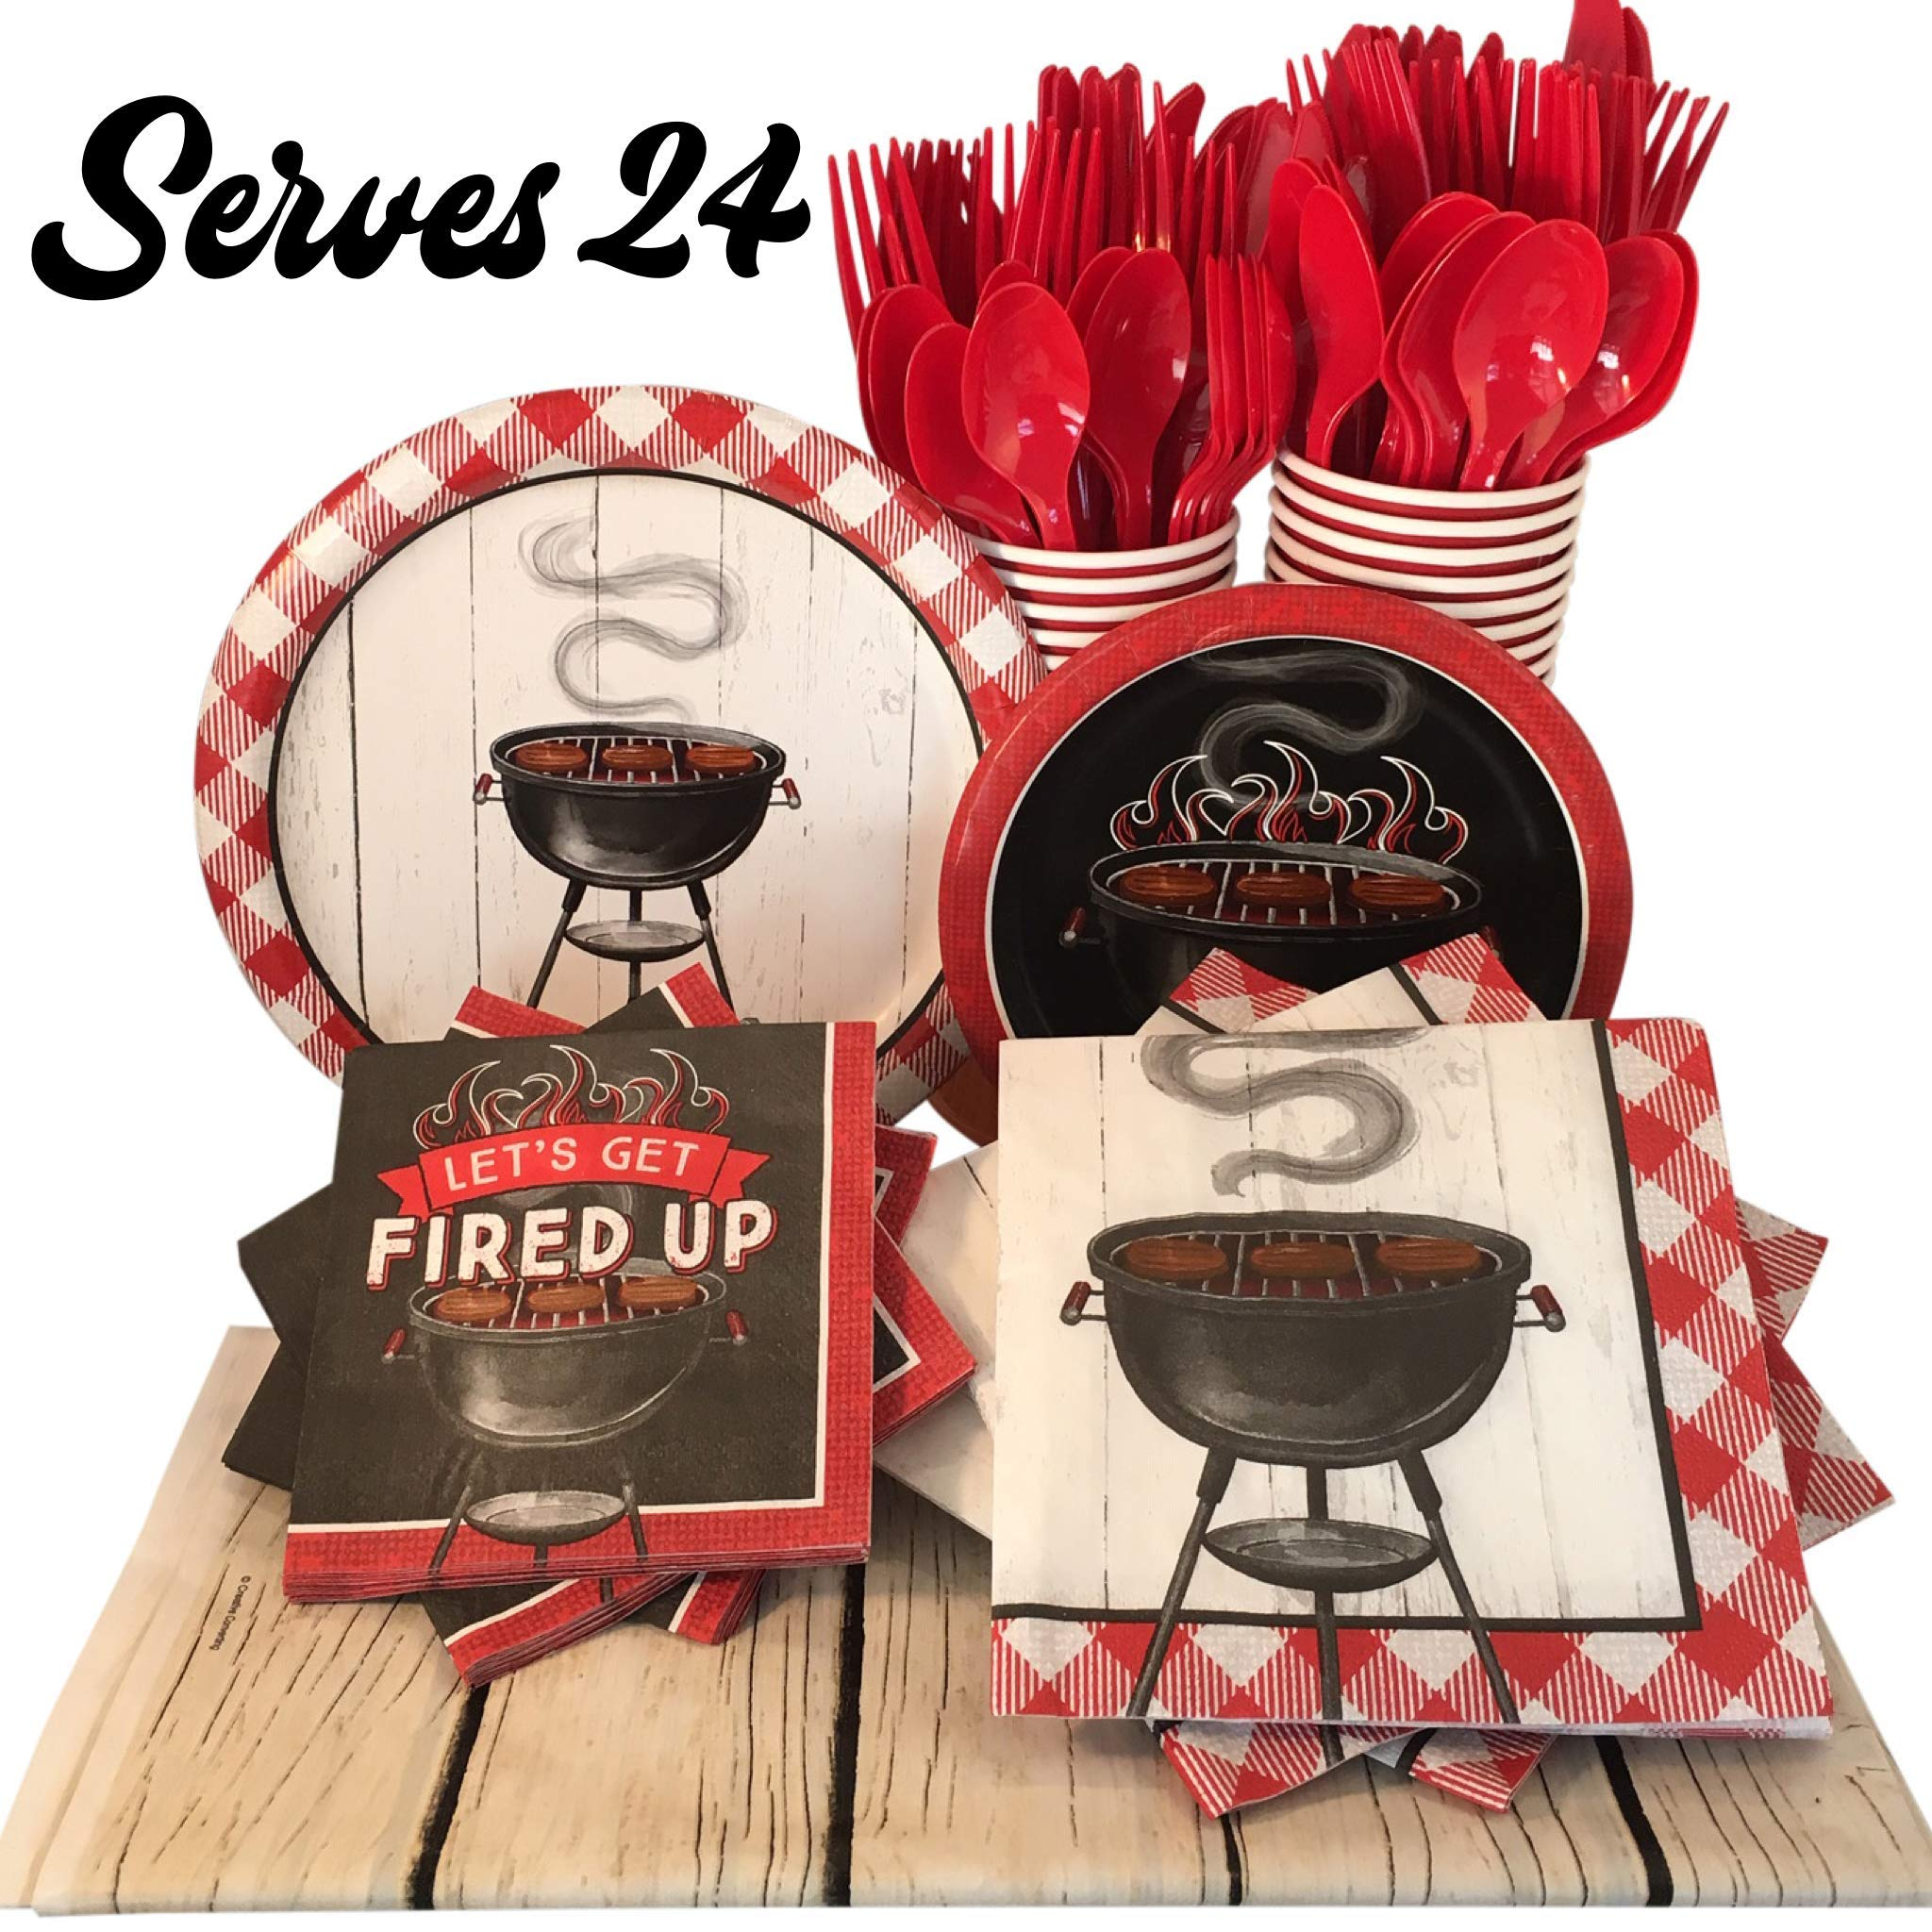 Backyard BBQ Paper Plates and Napkins with Cups, Utensils and Tablecloth - Picnic Party Supplies with Shiplap and Gingham Grill Design (Serves 24)